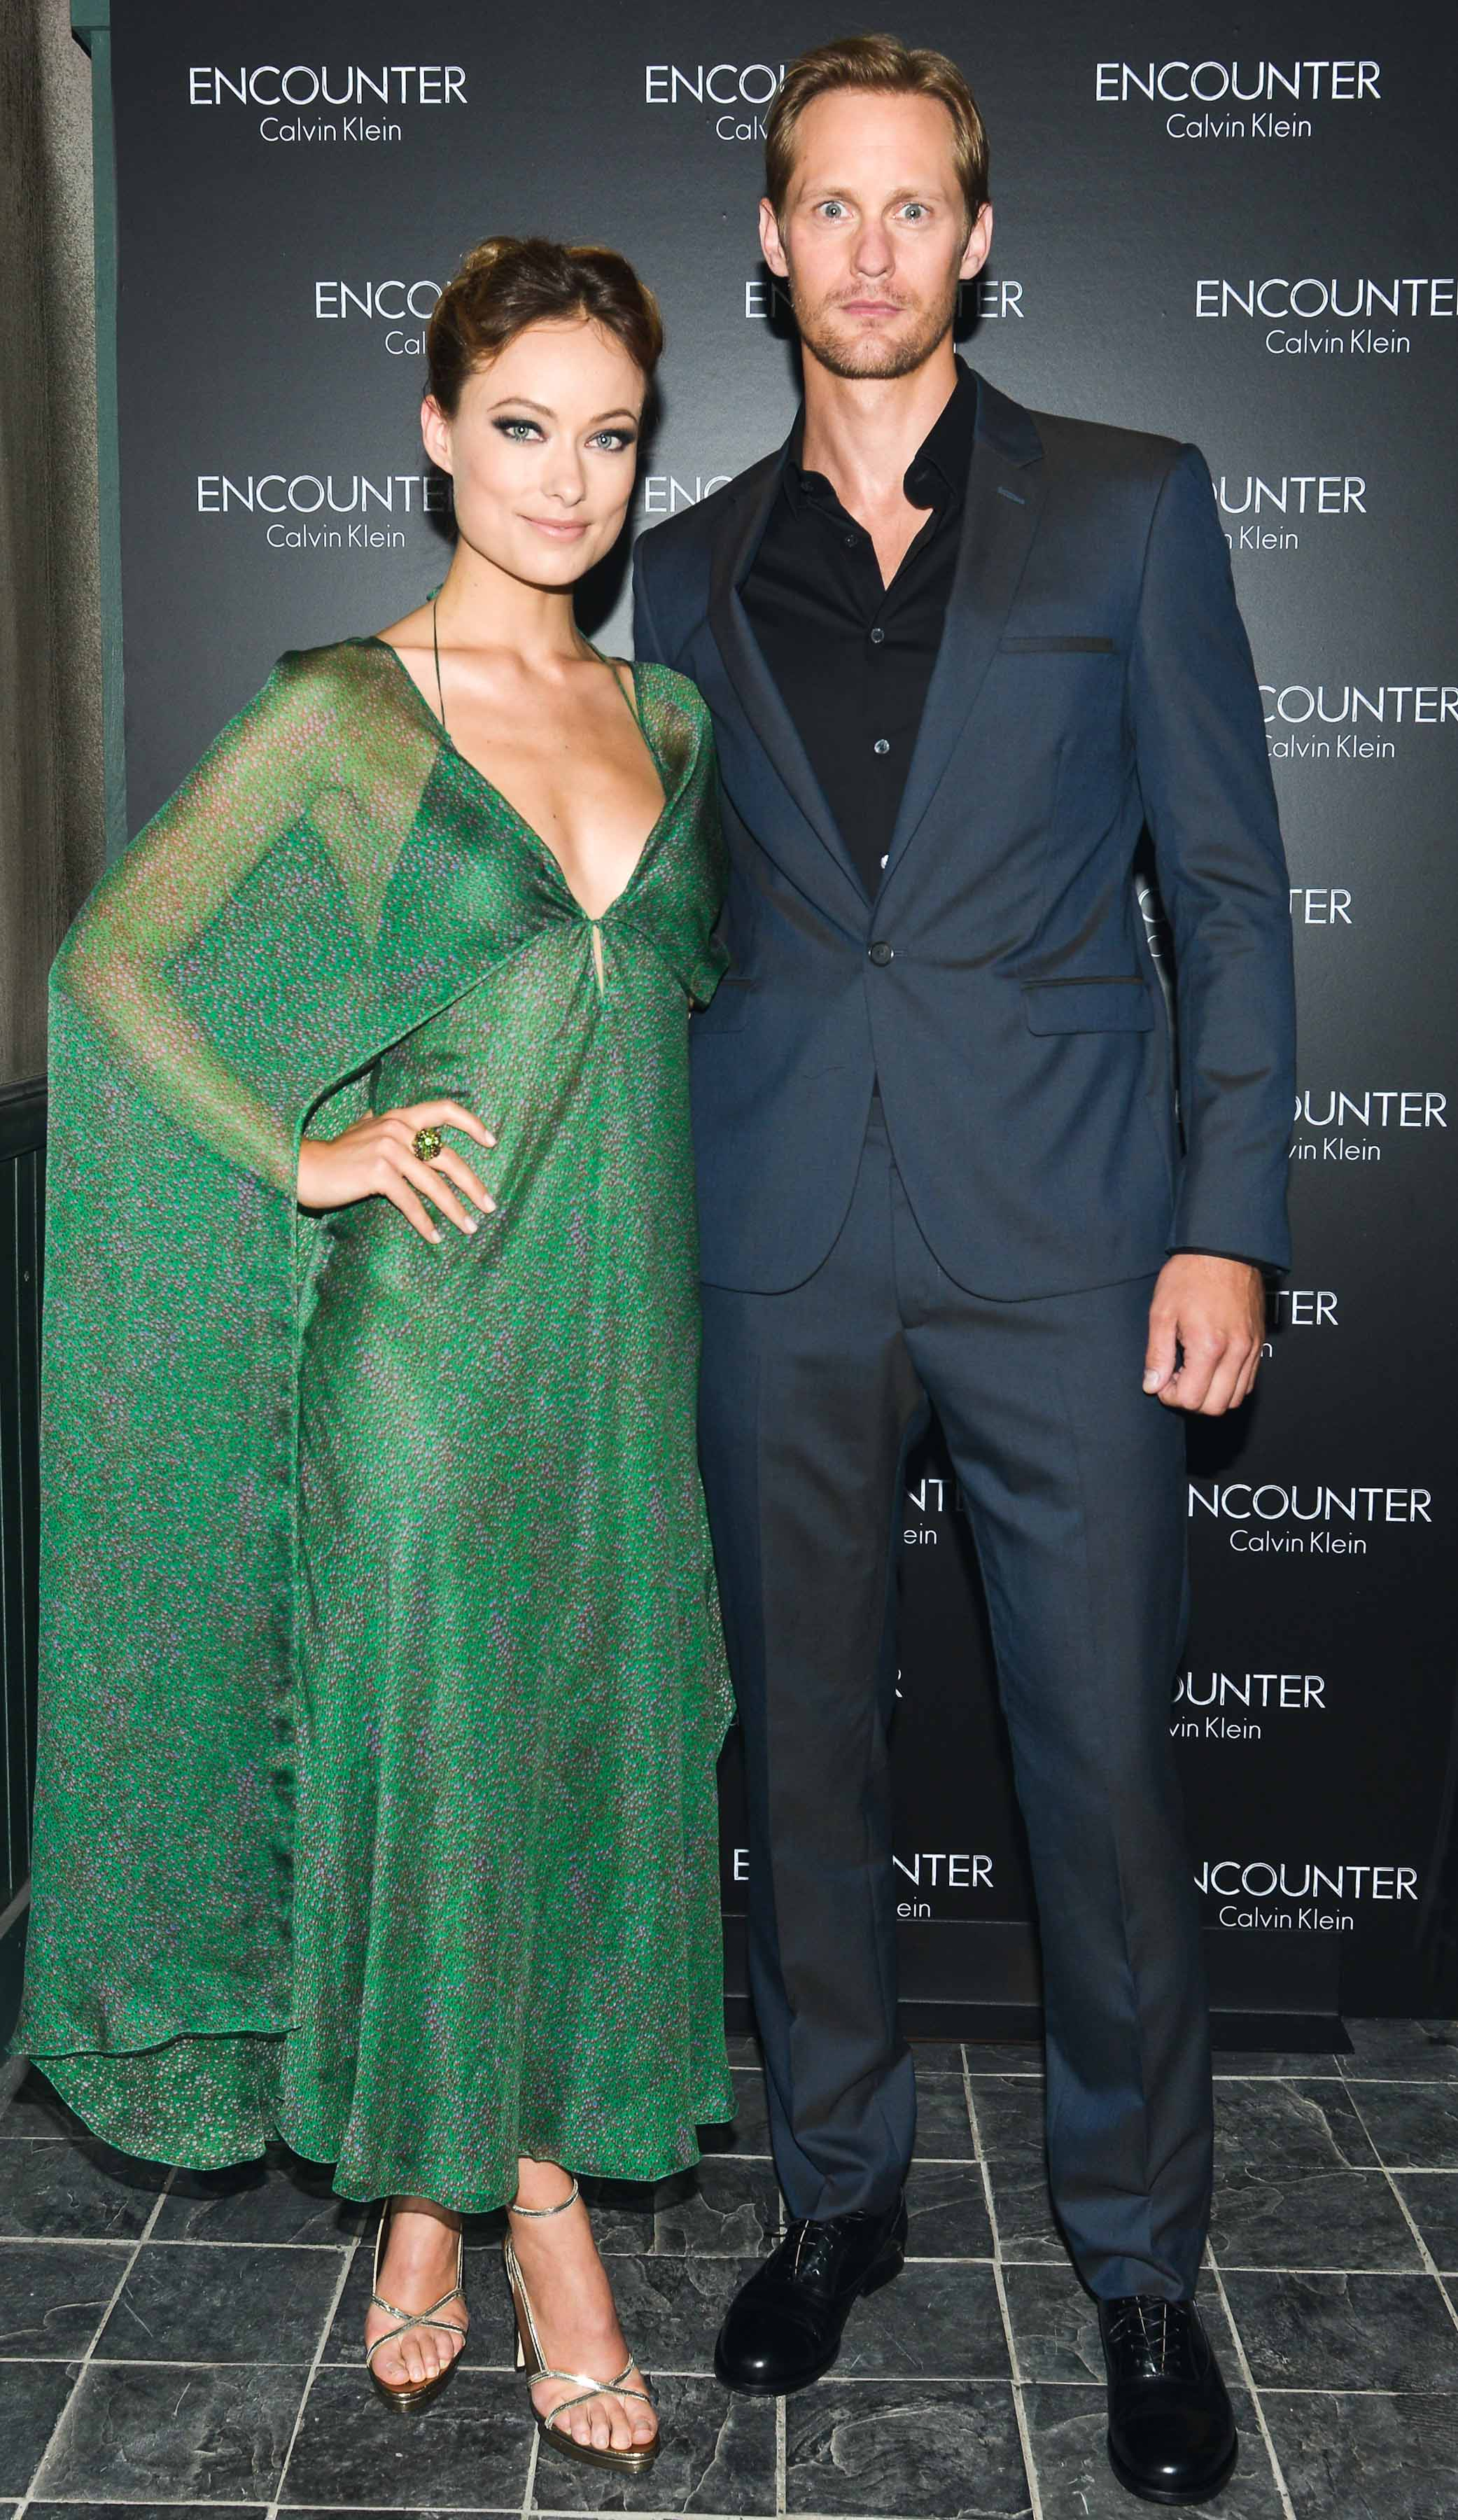 ENCOUNTER Calvin Klein Global Fragrance Launch With Alexander Skarsgard - Arrivals